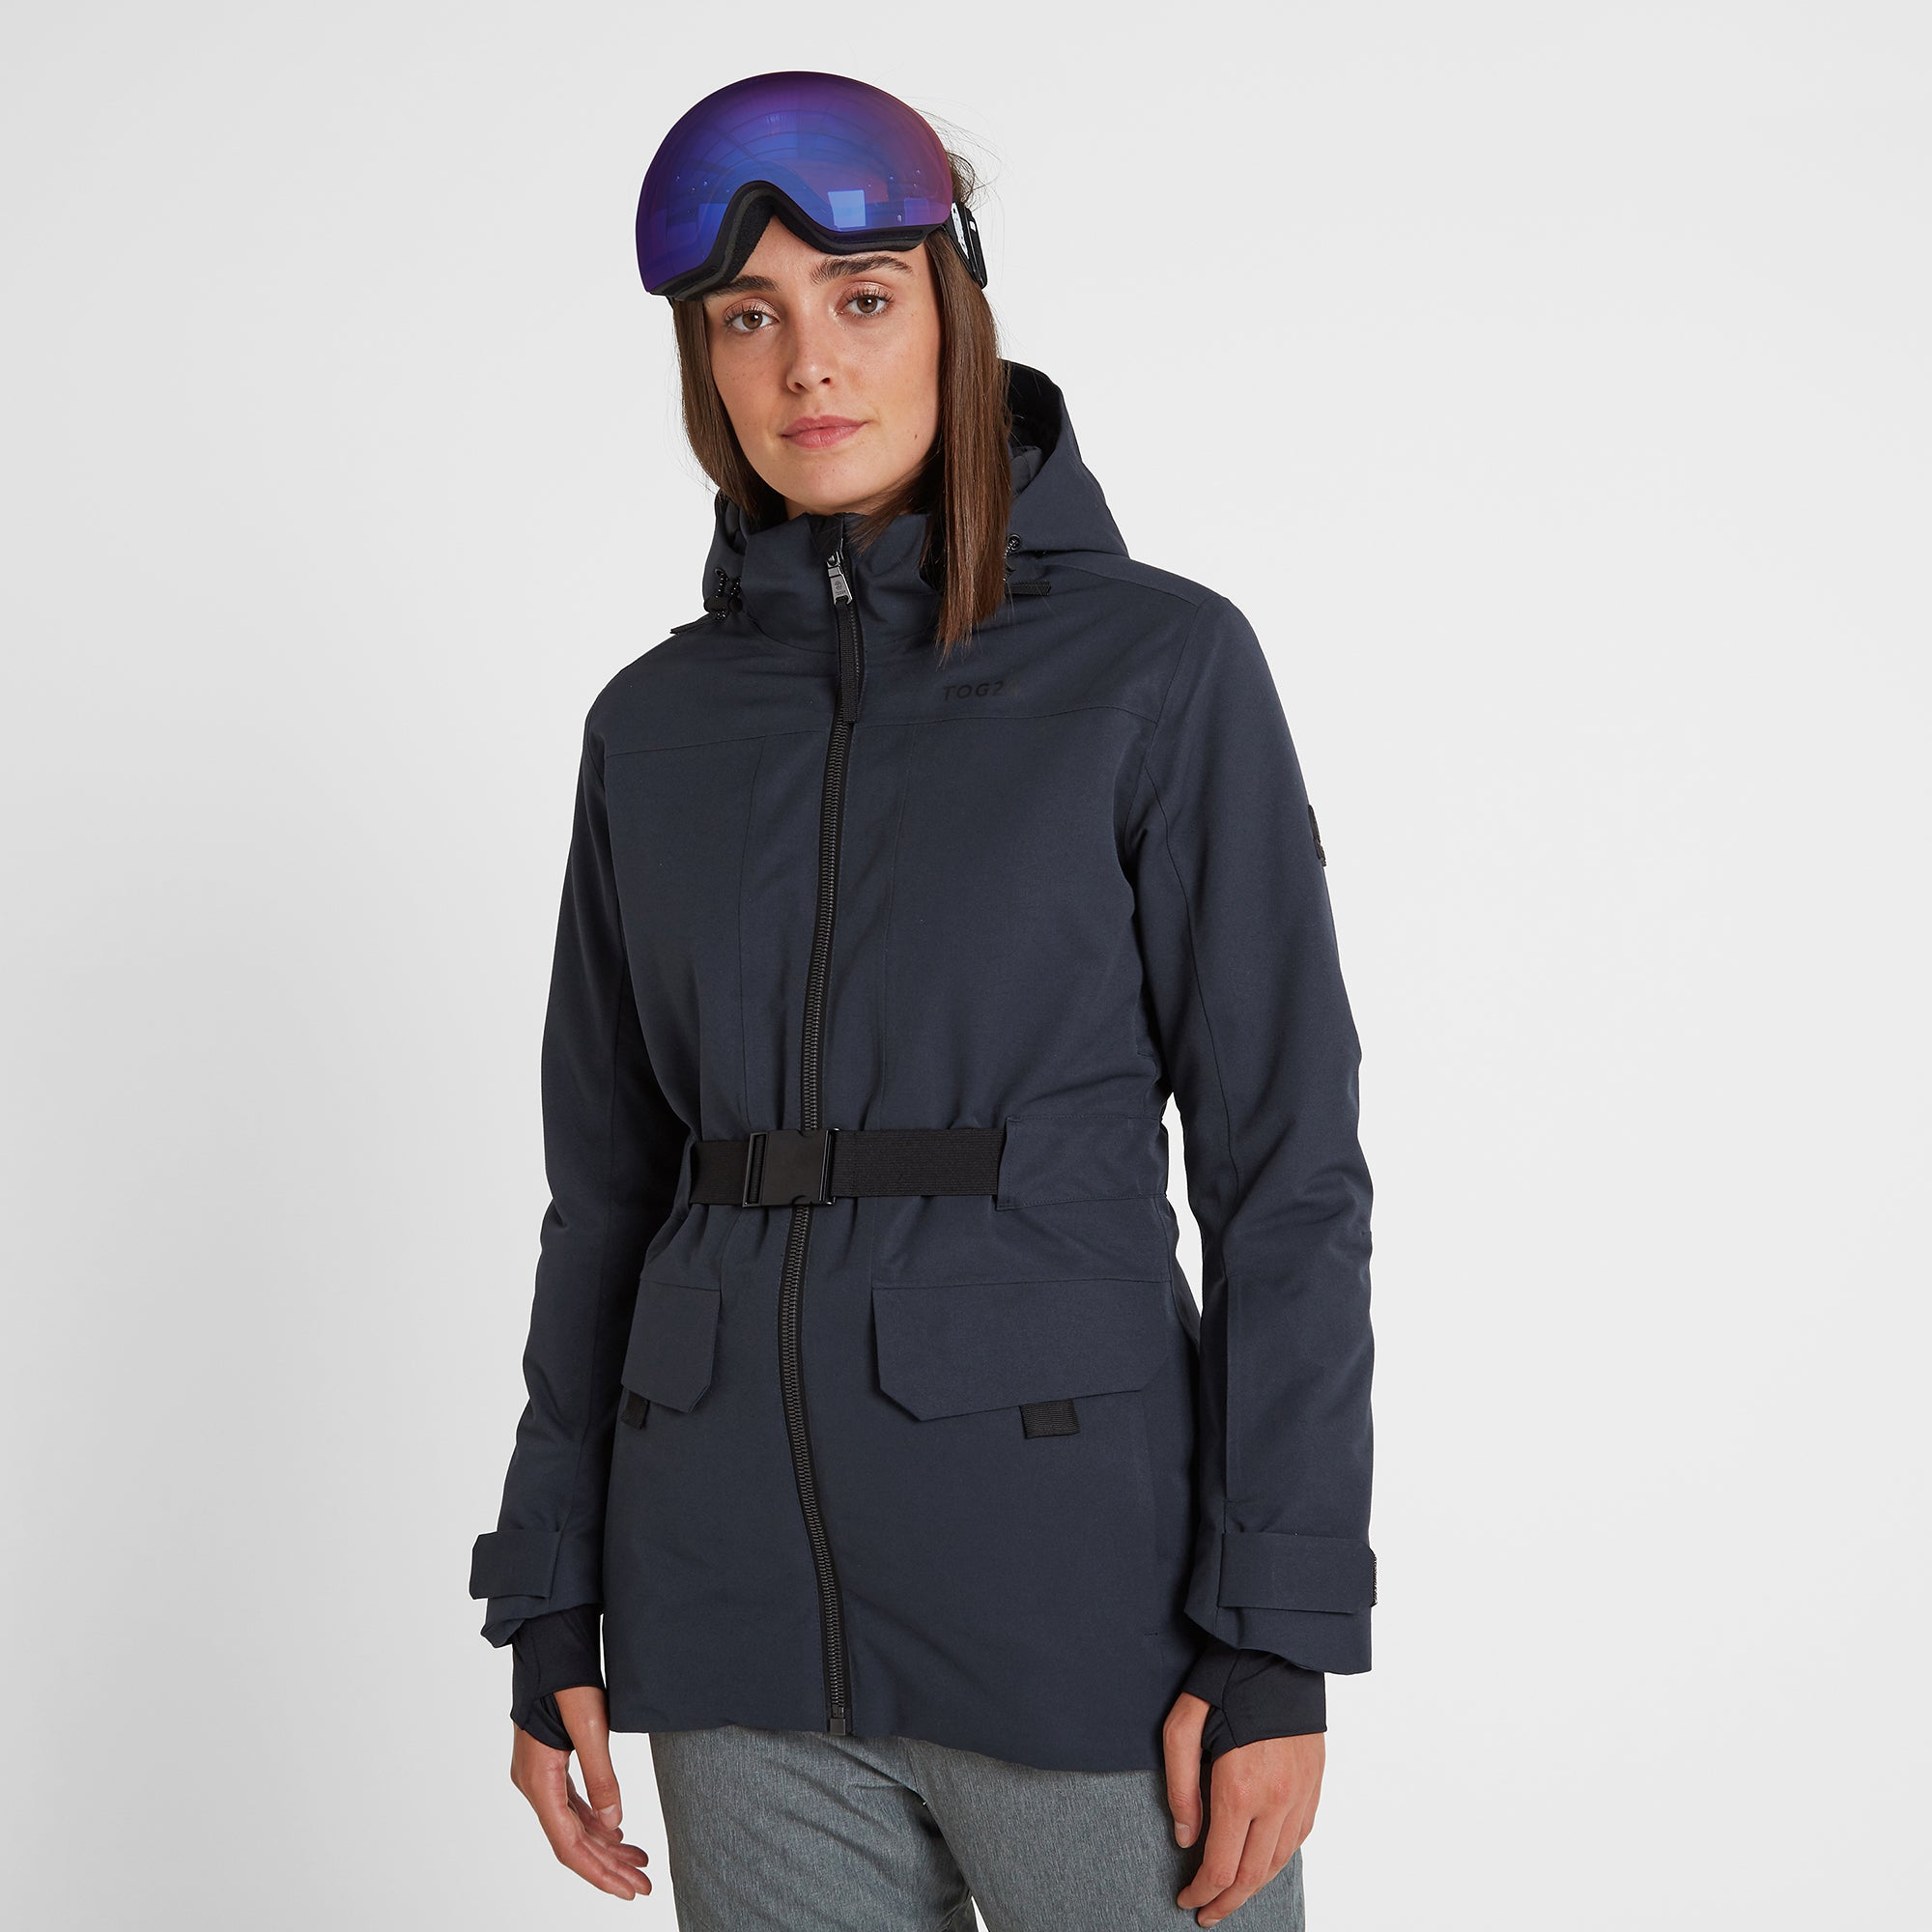 Helmsley Womens Waterproof Ski Jacket - Dark Indigo